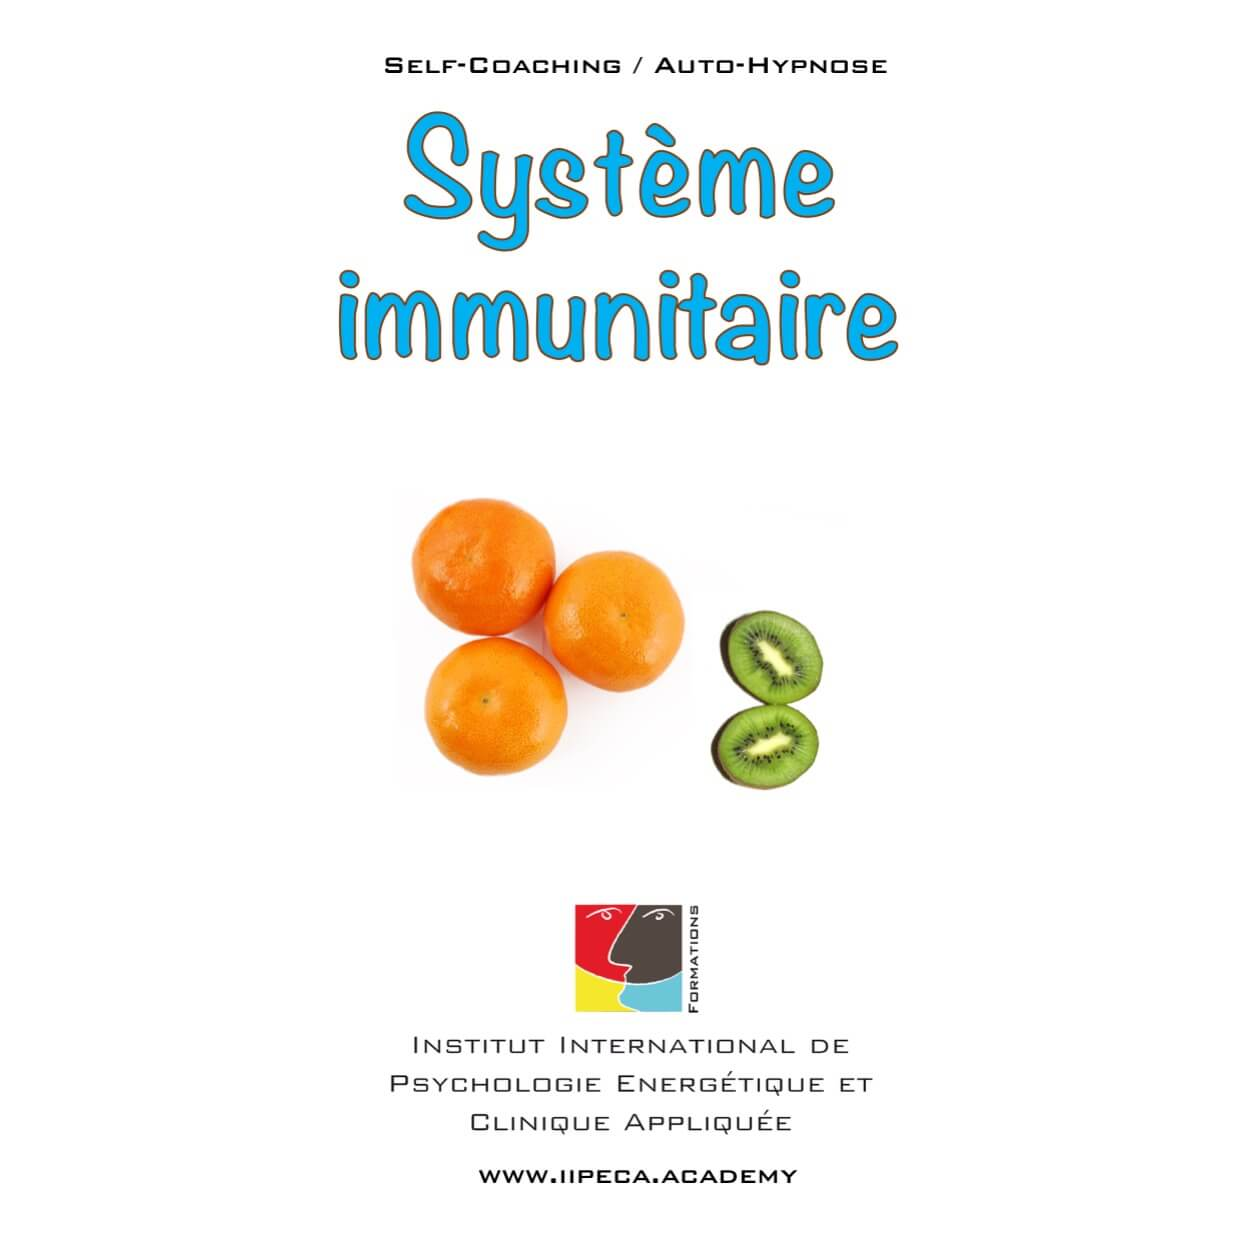 système immunitaire immunité iipeca academy mp3 self coaching auto-hypnose